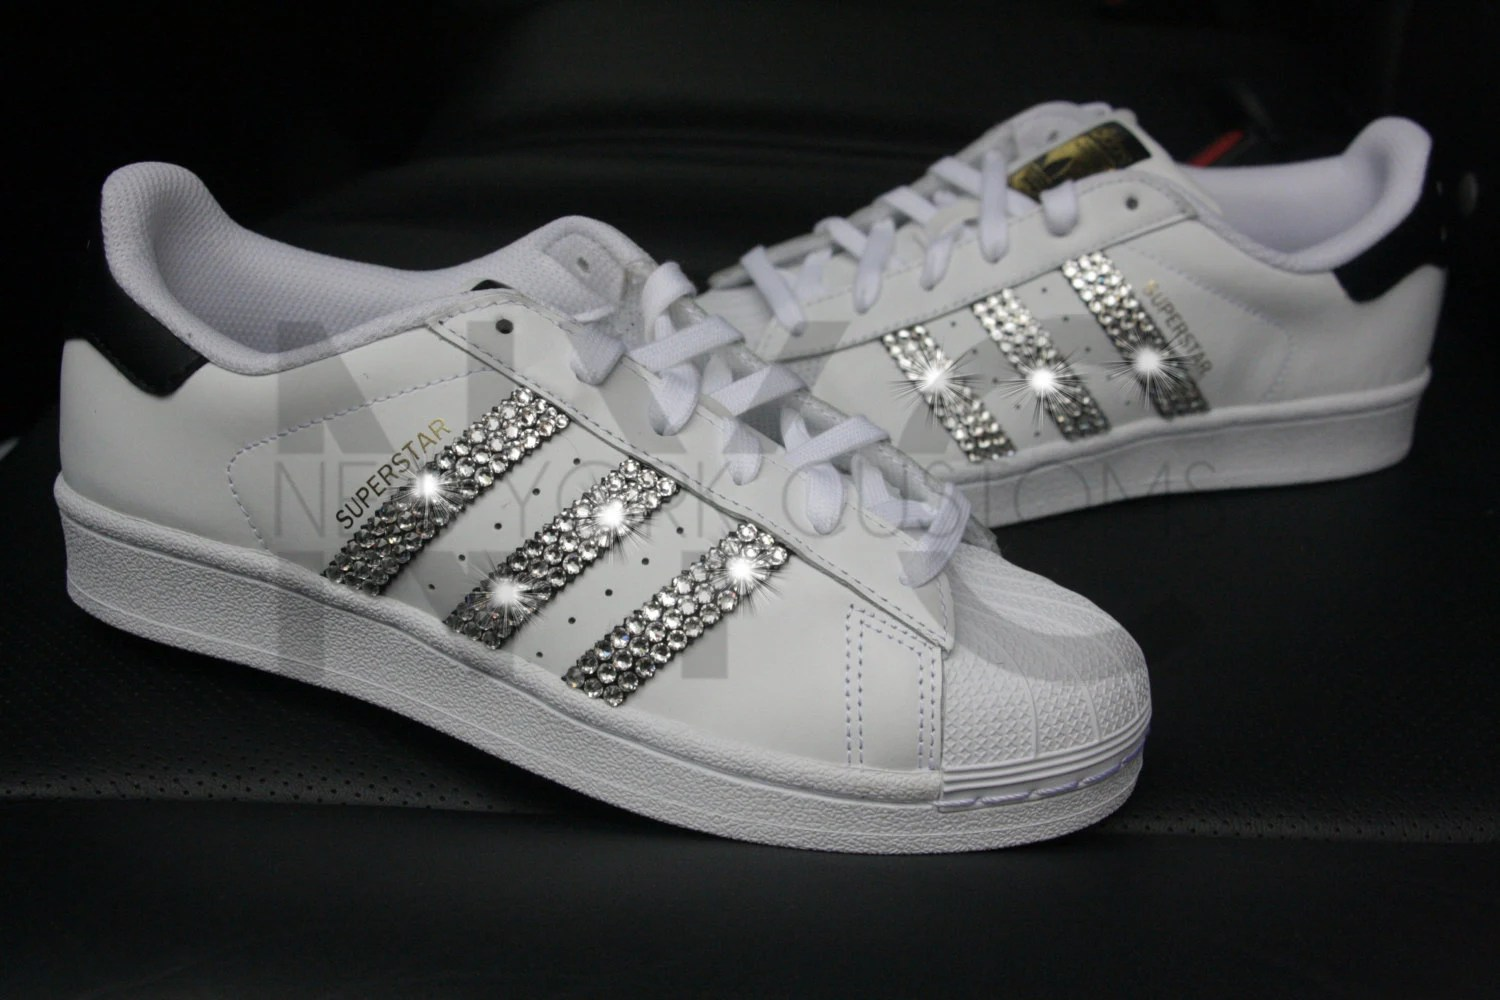 Adidas Superstar White Black Swarovski Crystal Rhinestones